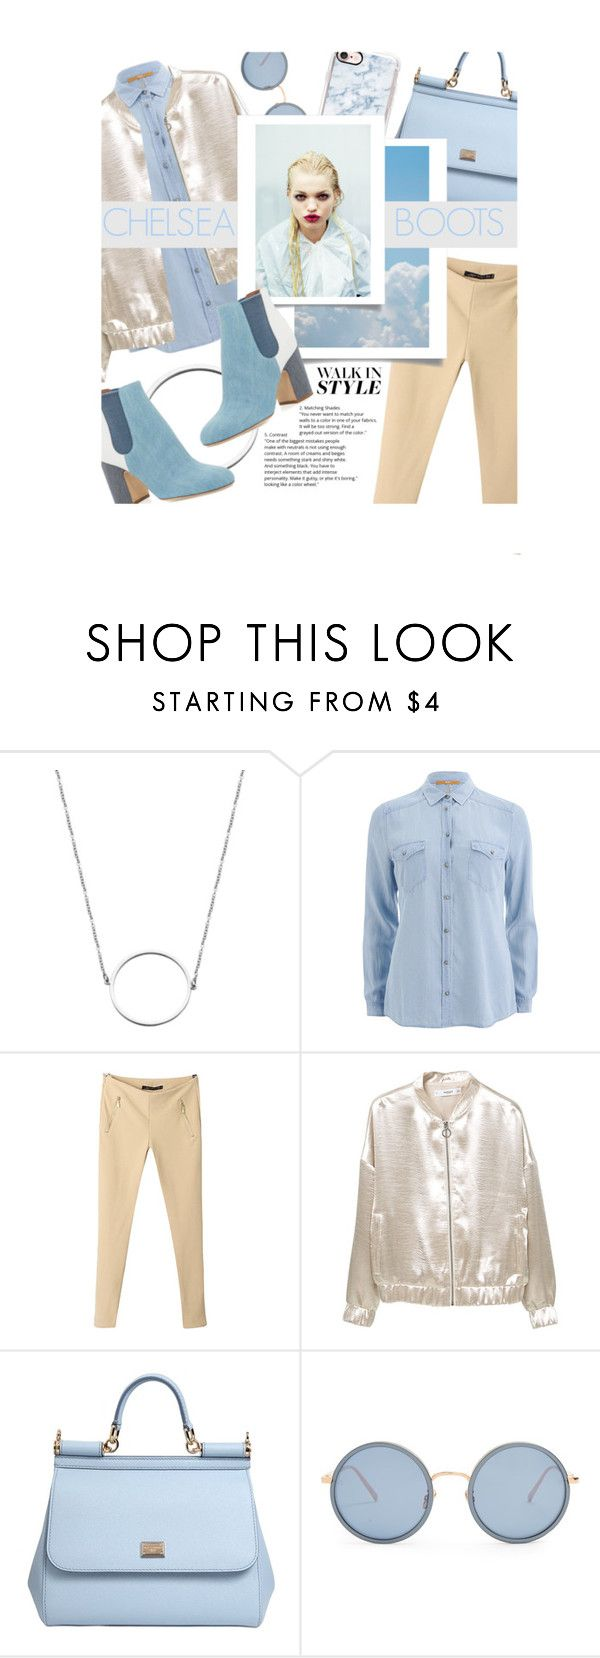 """""""My Blue """"Chelsea"""" Boots"""" by vxstitus ❤ liked on Polyvore featuring Laurence Dacade, BOSS Orange, MANGO, Dolce&Gabbana, Linda Farrow, Casetify, Blue, Tan and chelseaboots"""